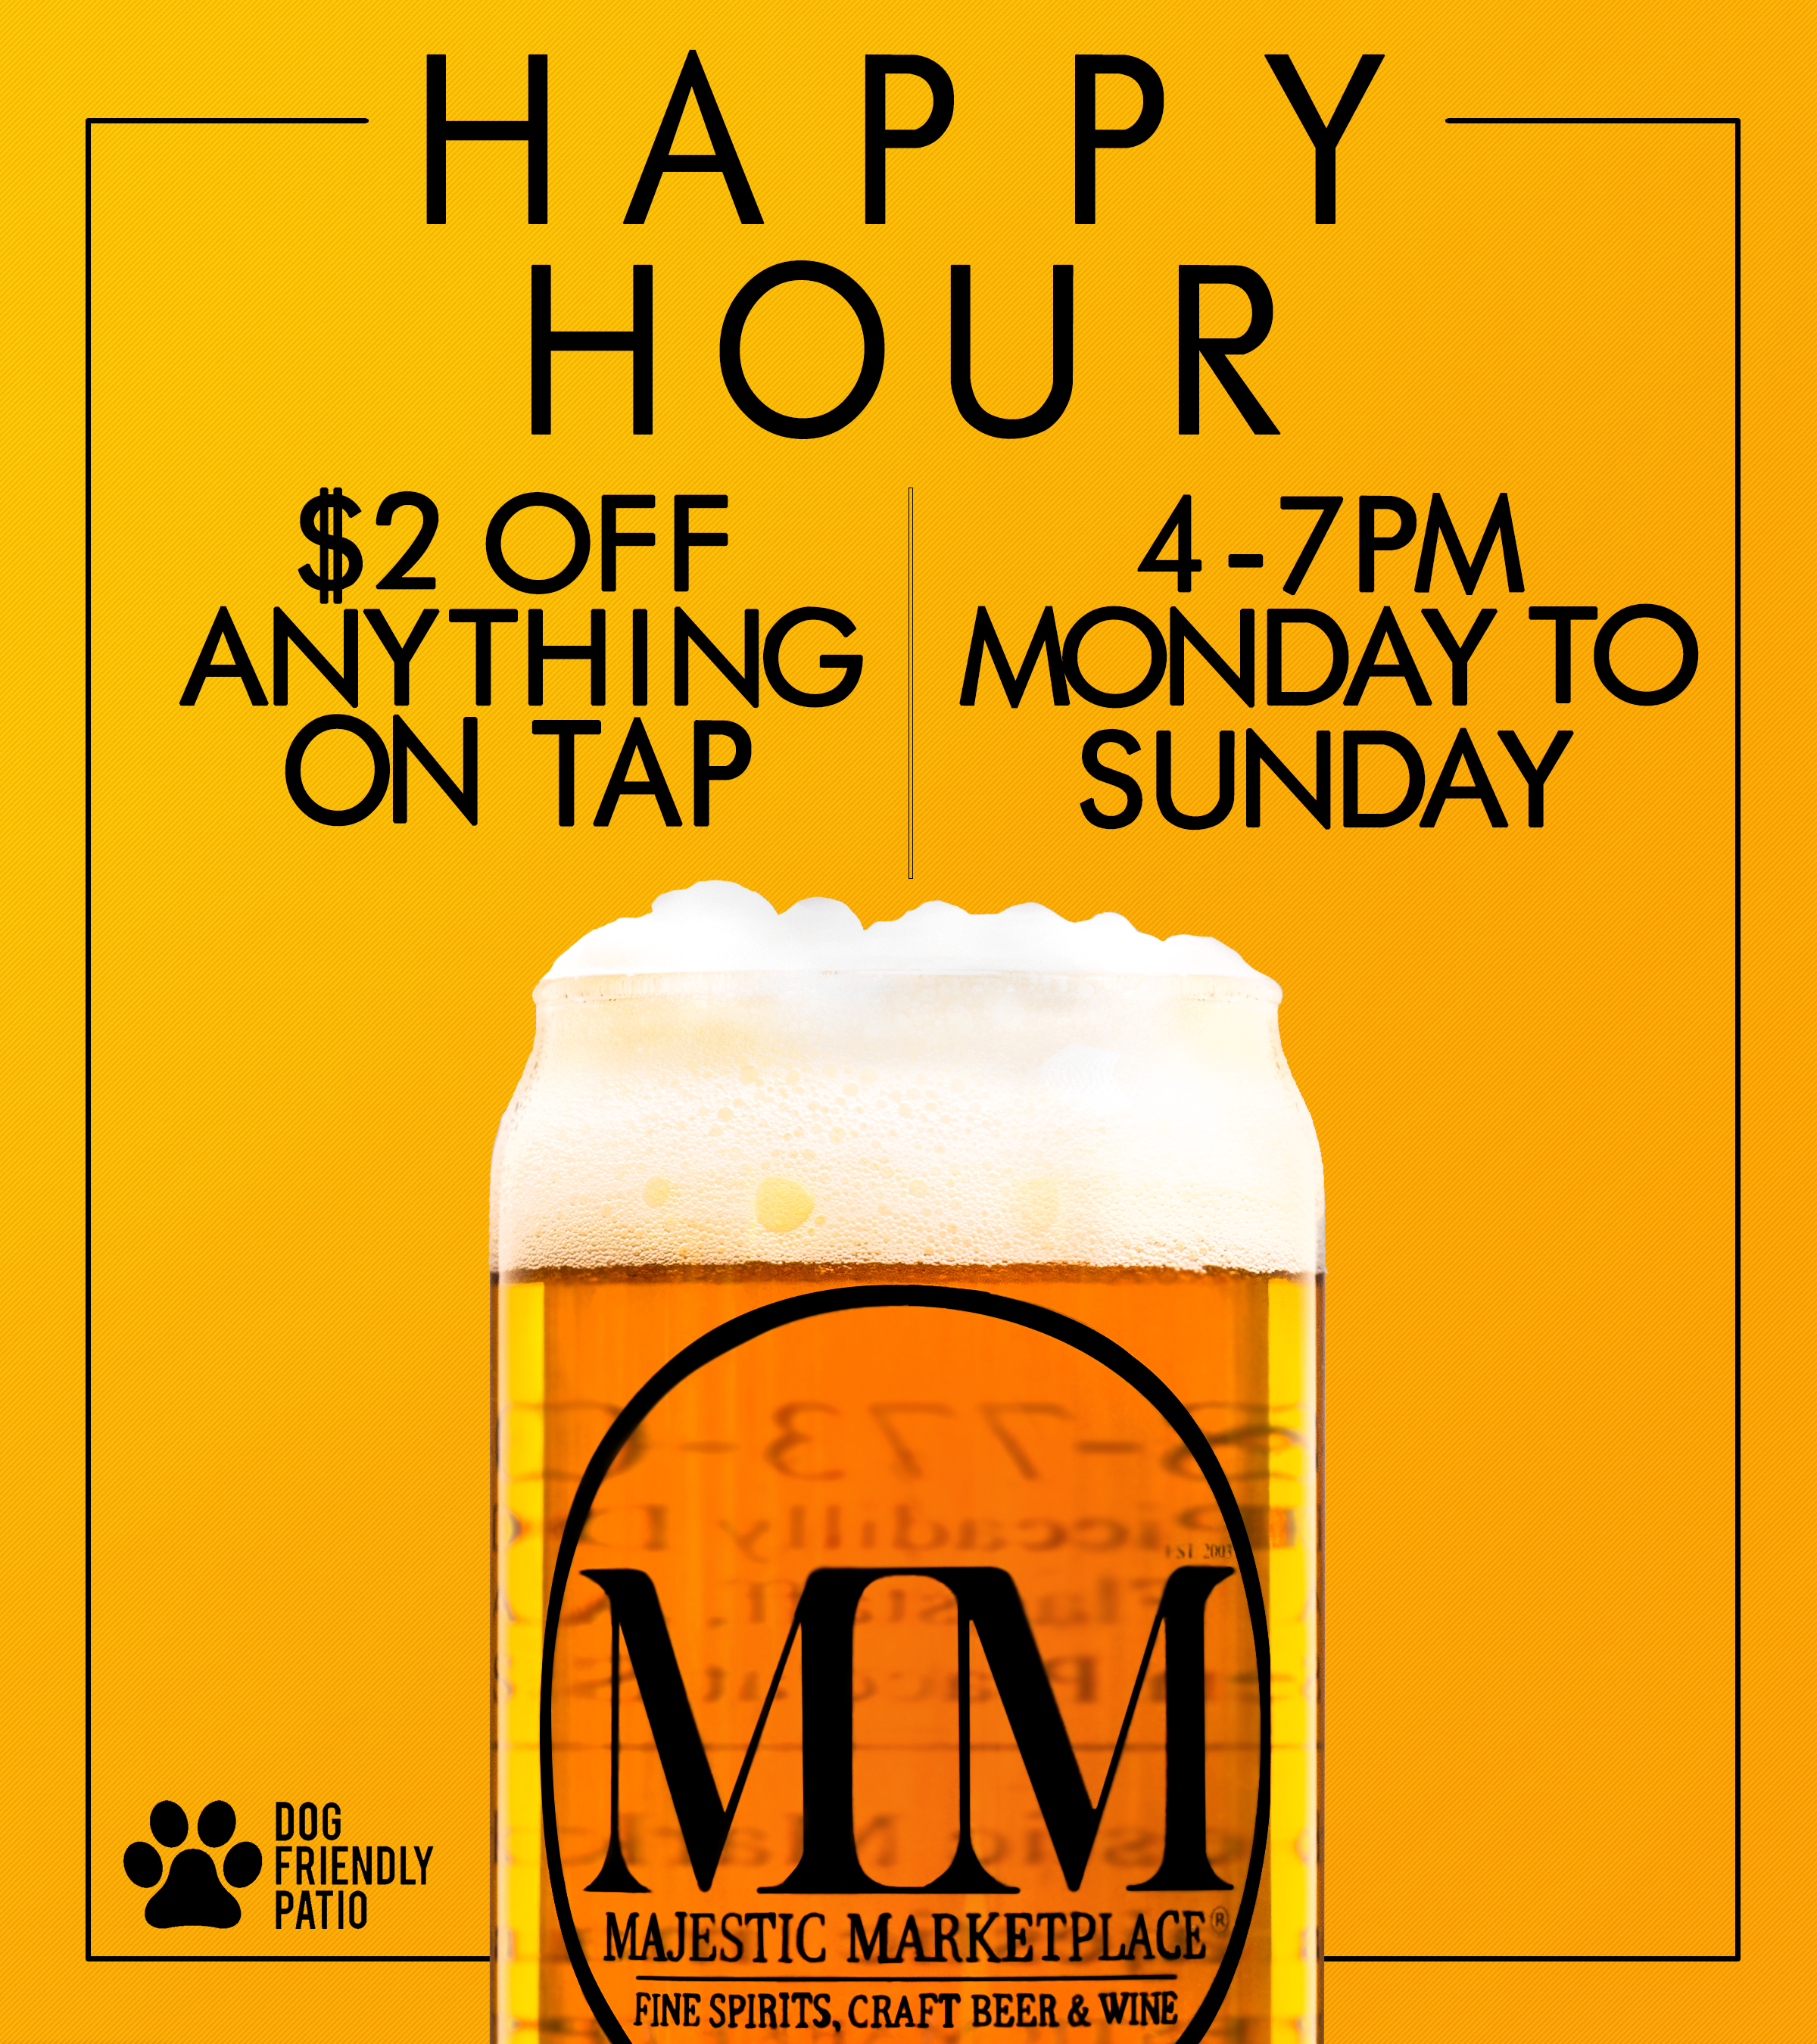 Majestic Marketplace Happy hour monday to sunday $2 off any beer on tap!.jpg